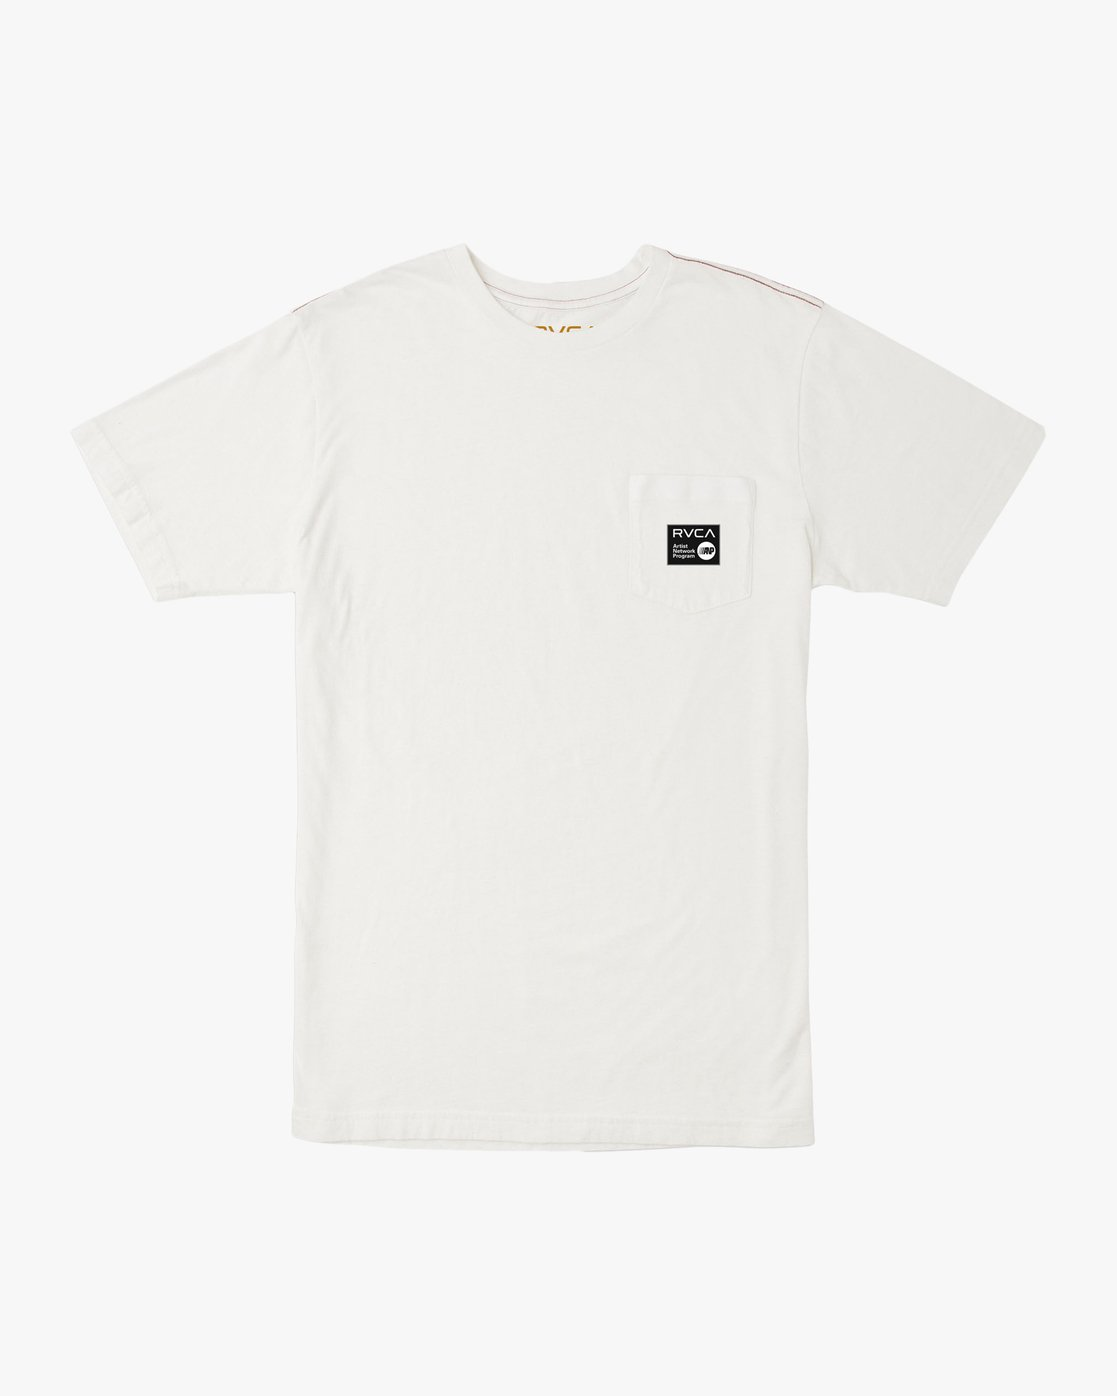 0 ANP Pocket T-Shirt White M436TRAN RVCA